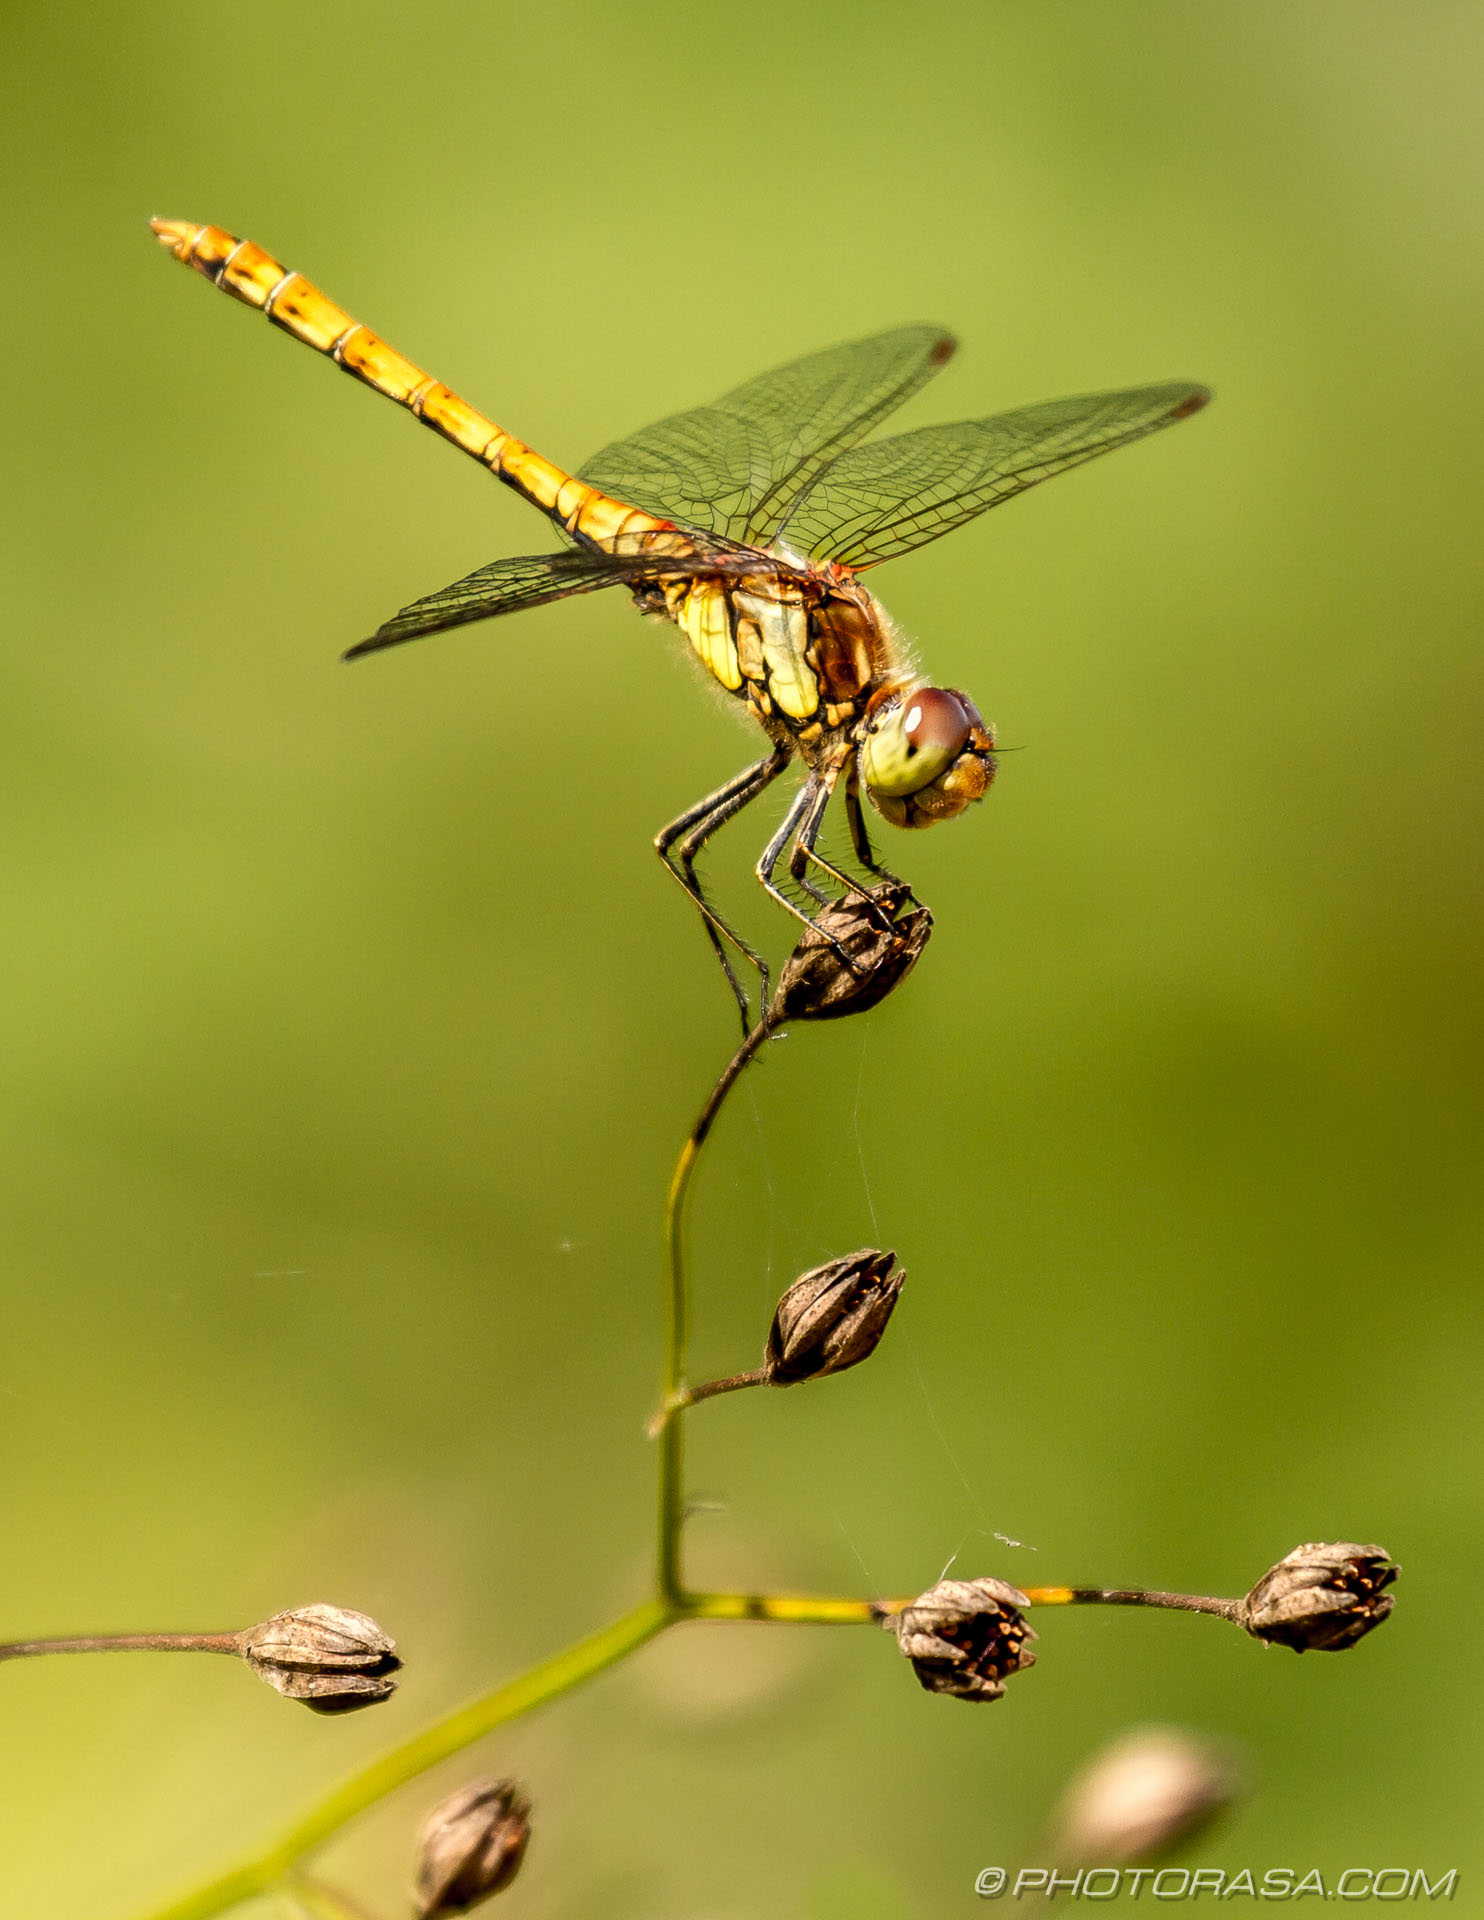 https://photorasa.com/dragonflies/female-common-darter-perched-on-plant-2/